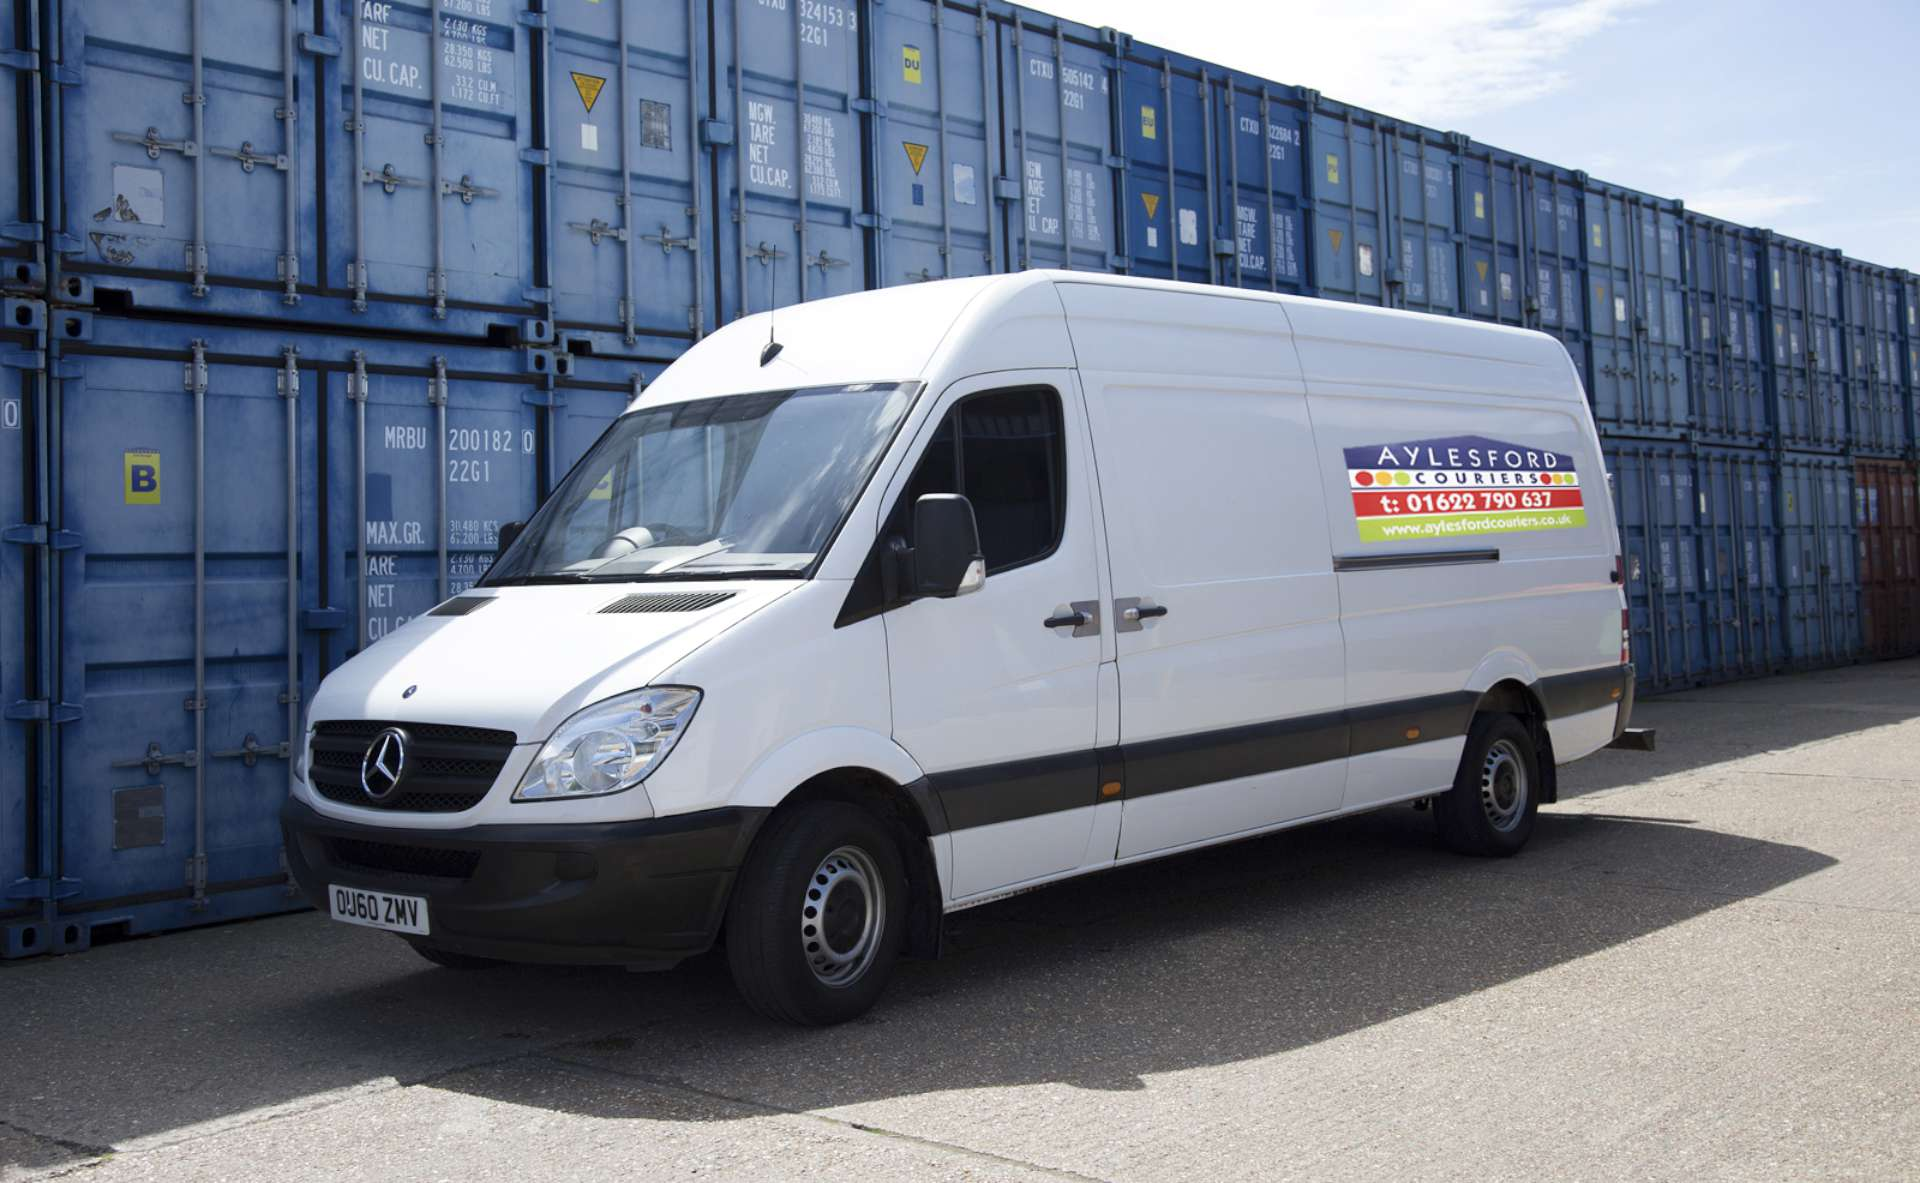 Courier Maidstone, Aylesford Couriers (1)